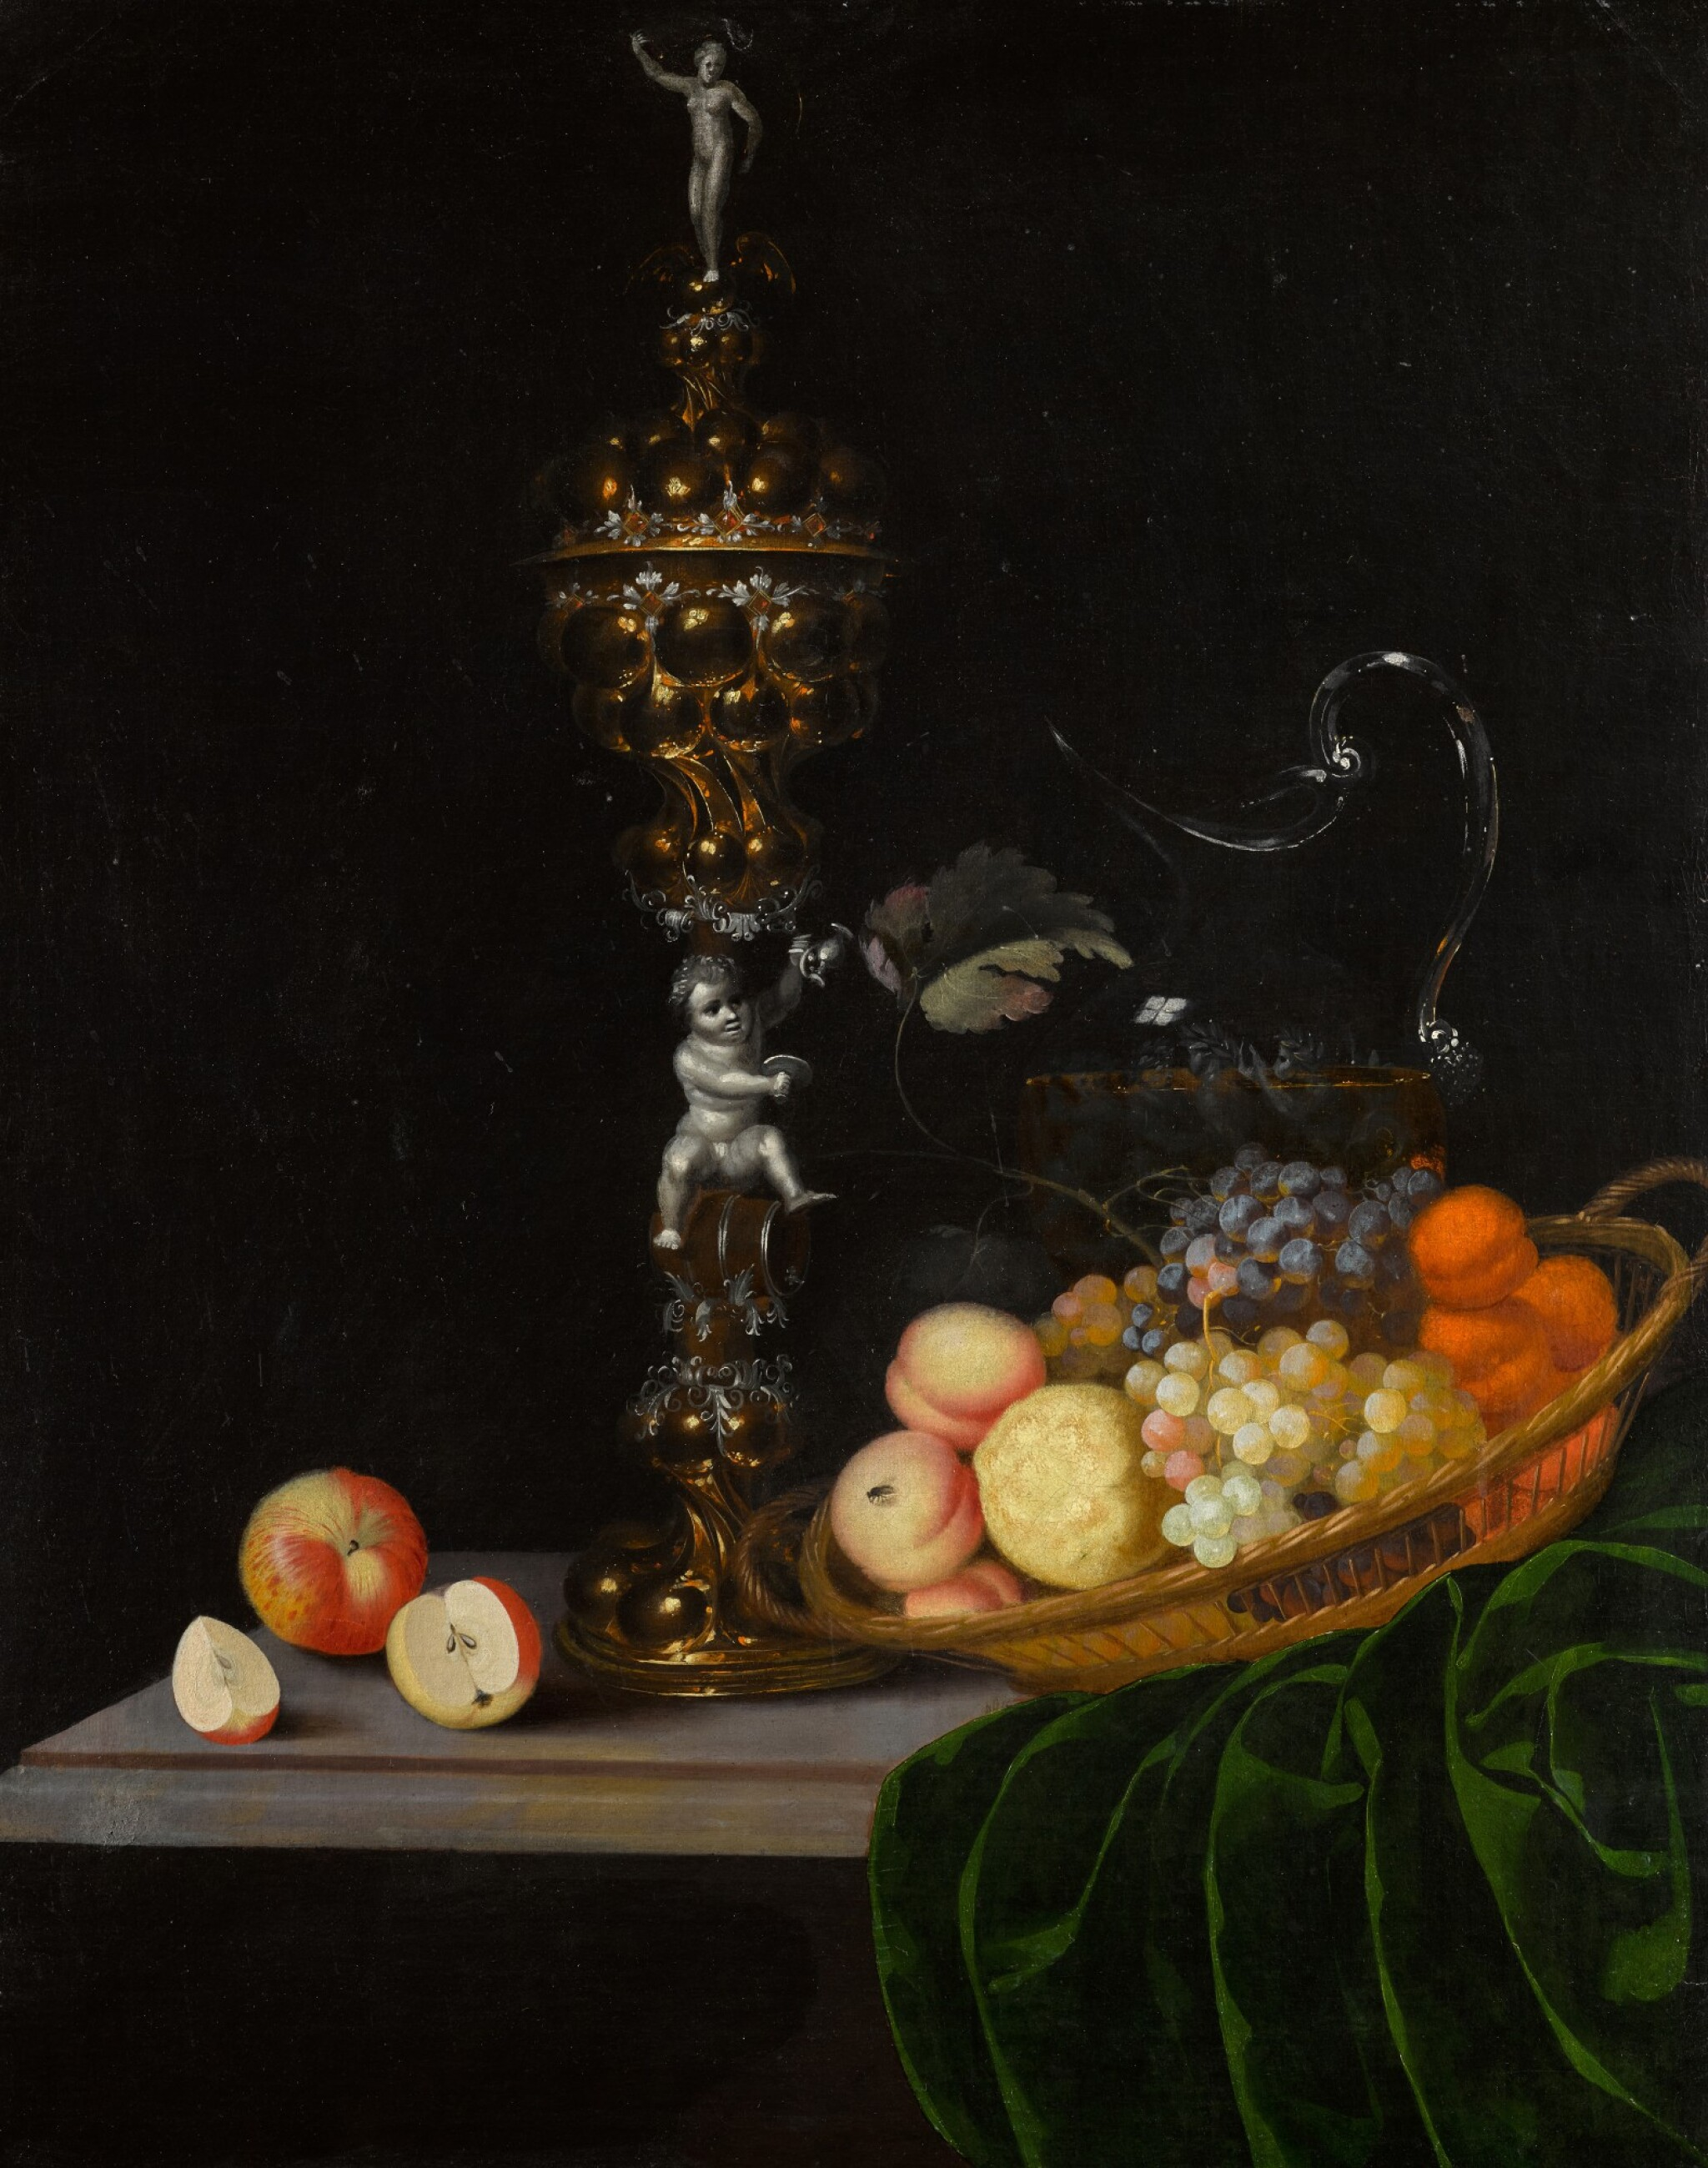 View 1 of Lot 138. Still life with an elaborate silver gilt standing cup, a basket of fruit, and a glass wine jug upon a partly draped table.